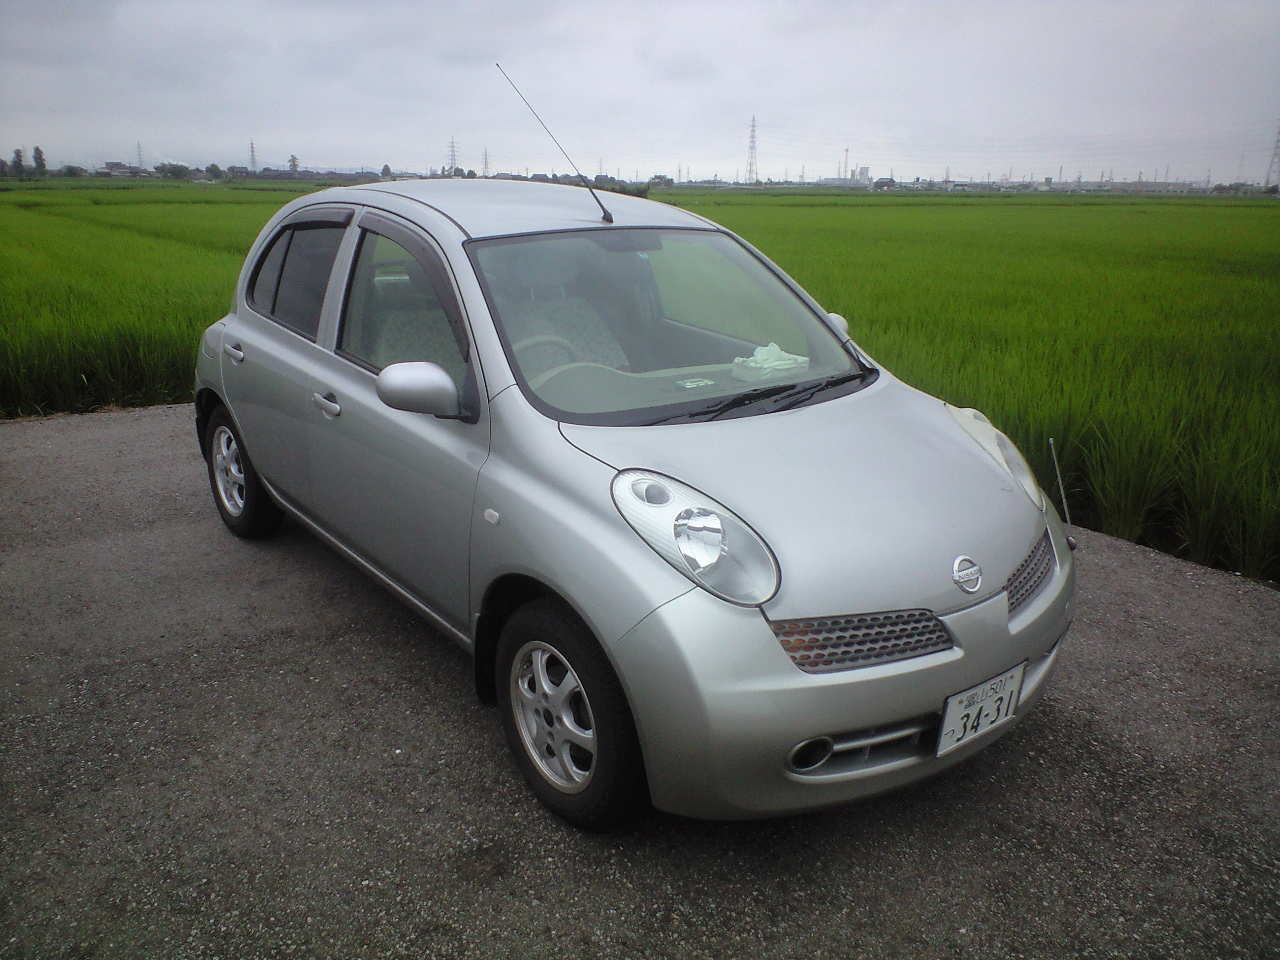 used 2005 nissan march photos 1300cc gasoline ff. Black Bedroom Furniture Sets. Home Design Ideas